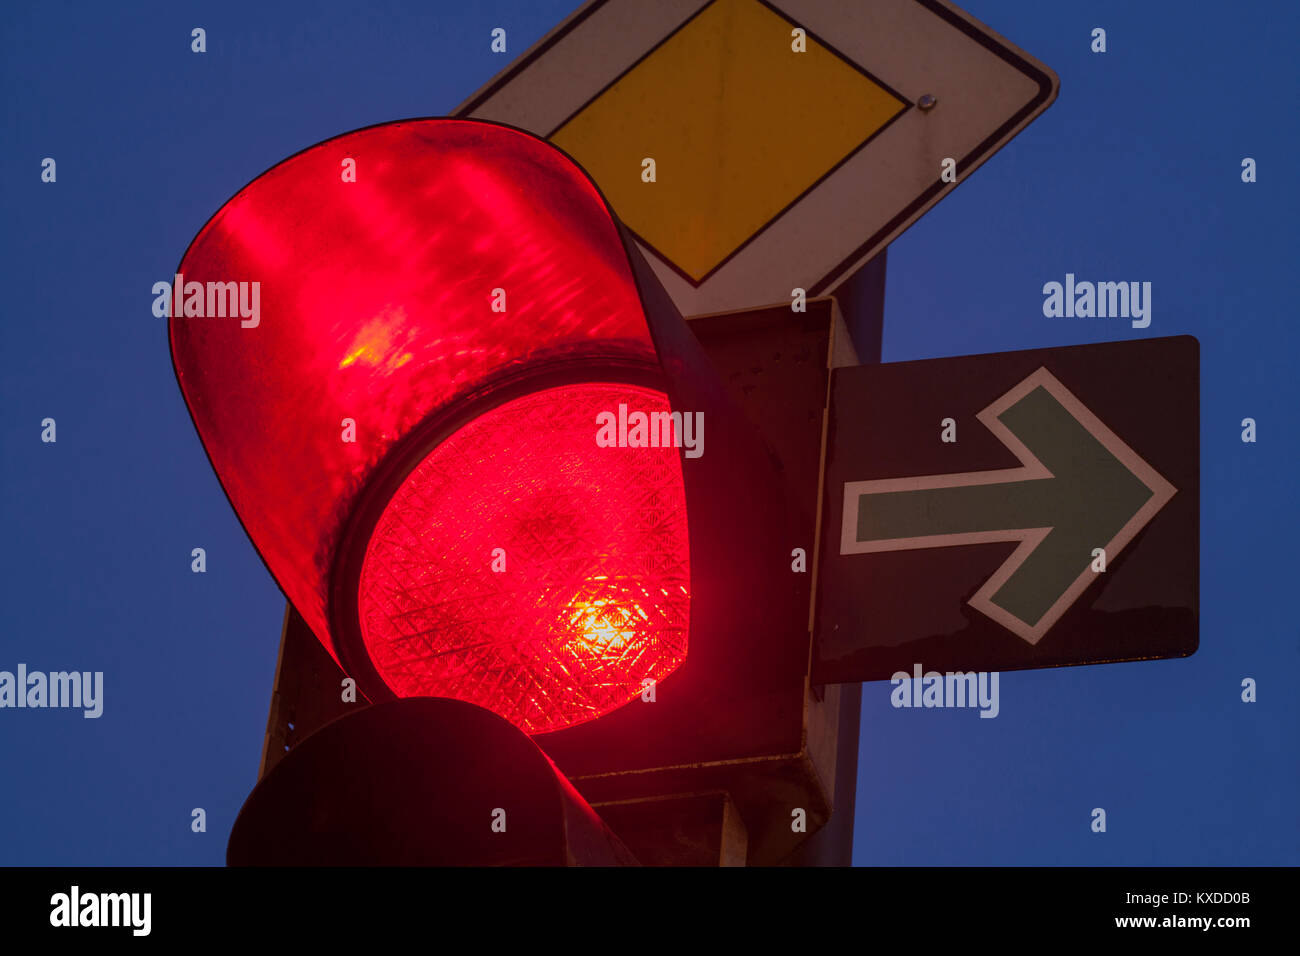 Traffic lights,red,green arrow to the right,twilight,Bremen,Germany - Stock Image